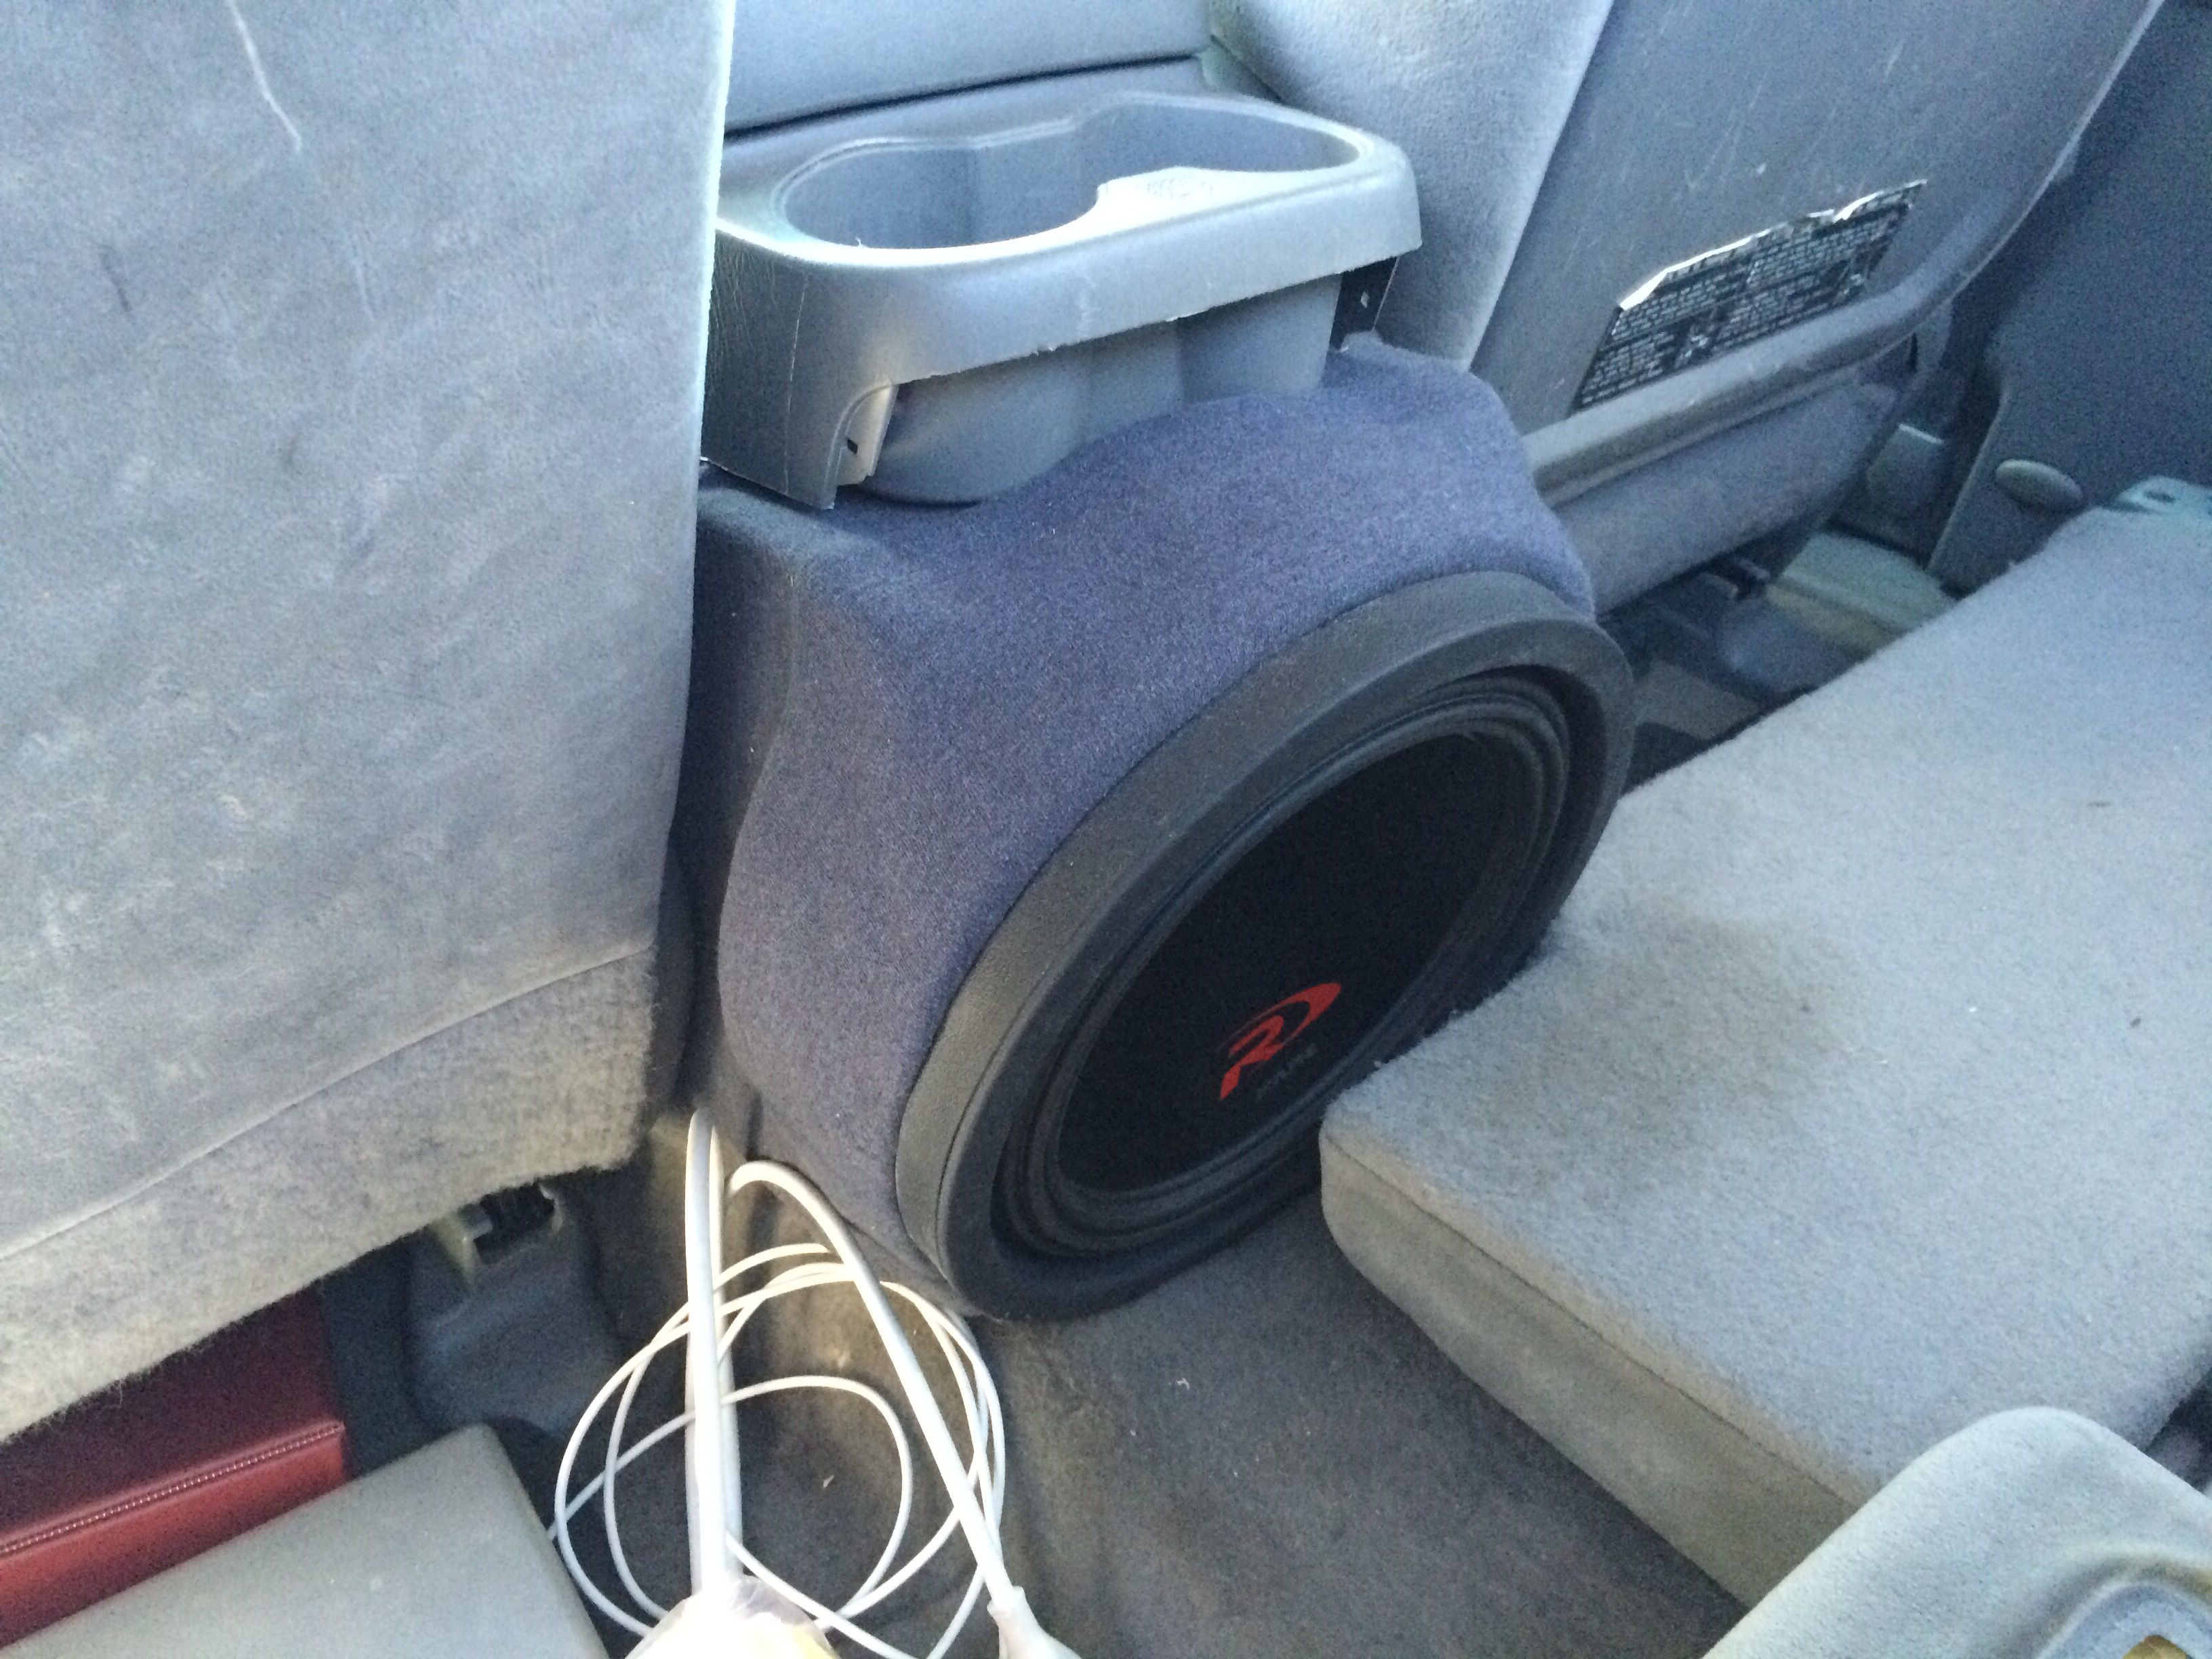 Subwoofer Box I Made To Fit The Center Console Of A 2nd Gen Toyota Tacoma My Creations